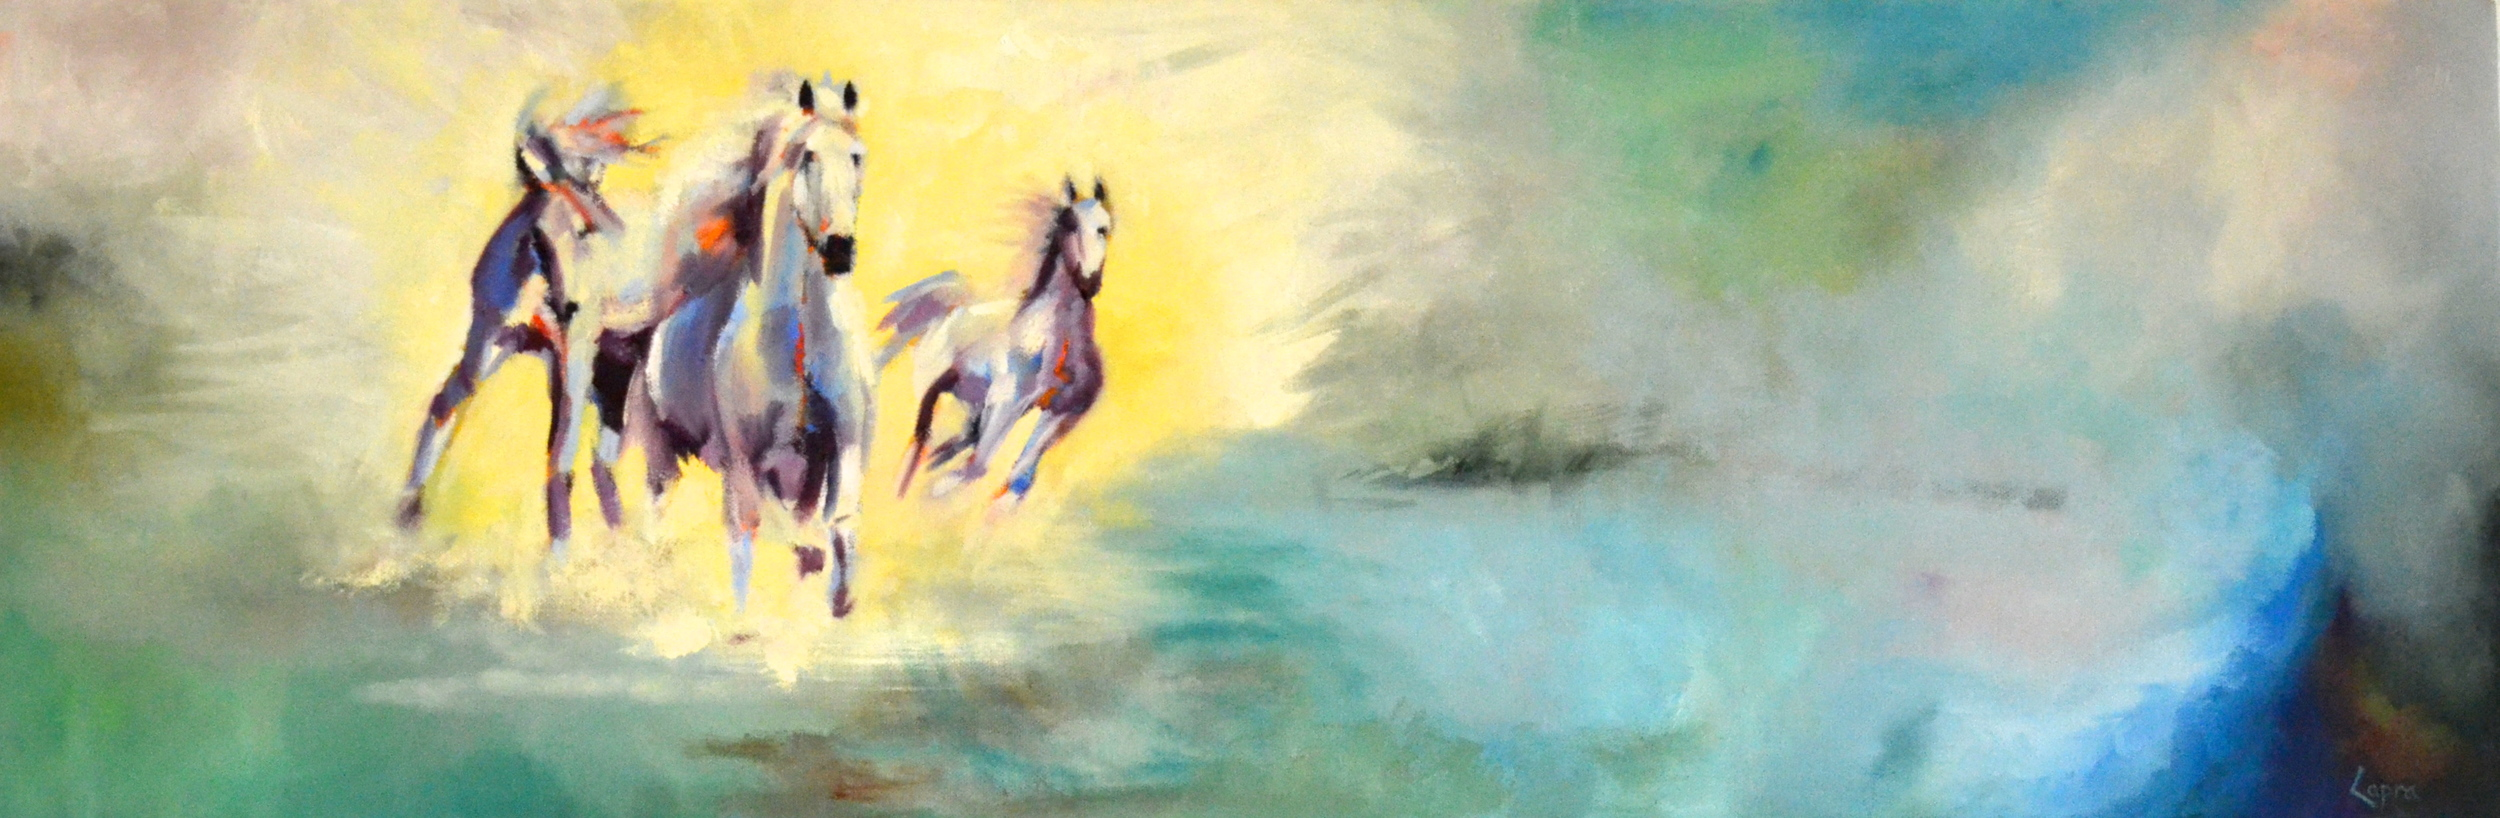 United Grace   12x36  oil painting   SOLD